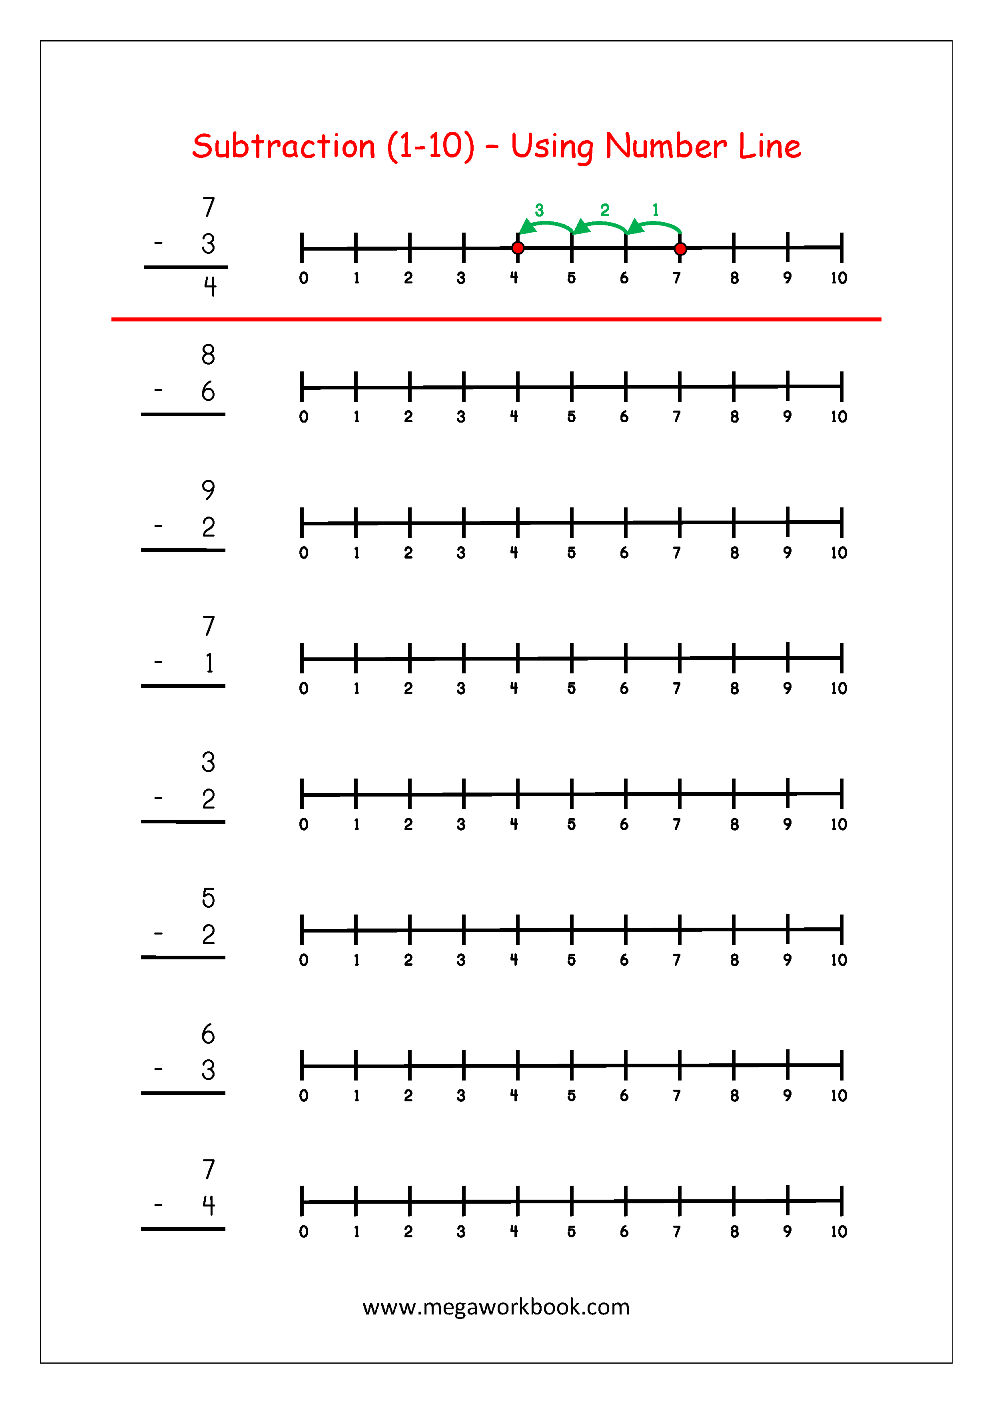 Subtraction Worksheets - Subtraction With Pictures/Objects/Tally Marks To  Cross Out - Subtraction Using Number Line in 2020   Kindergarten worksheets  free printables [ 1403 x 992 Pixel ]